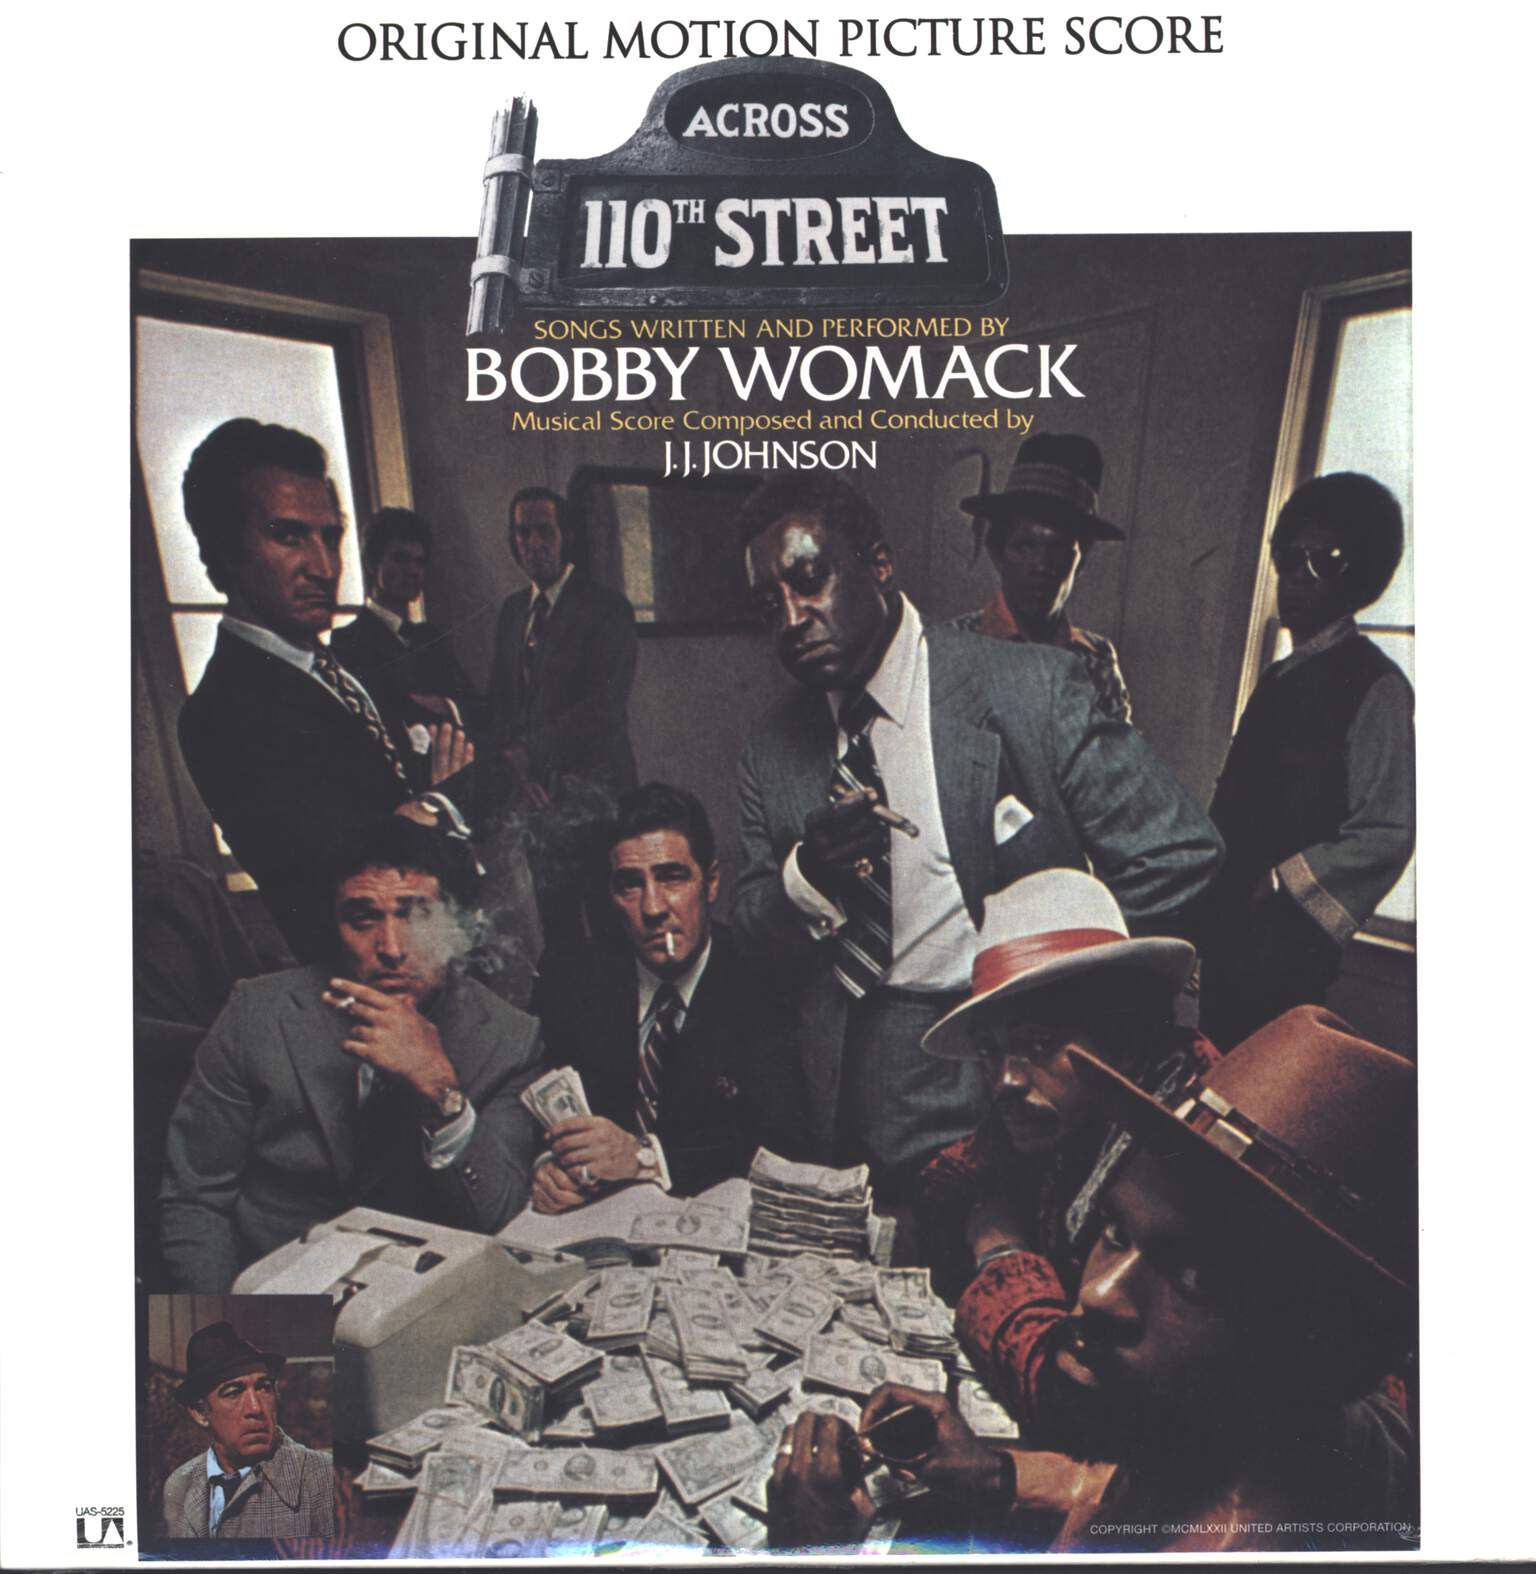 Bobby Womack: Across 110th Street, LP (Vinyl)